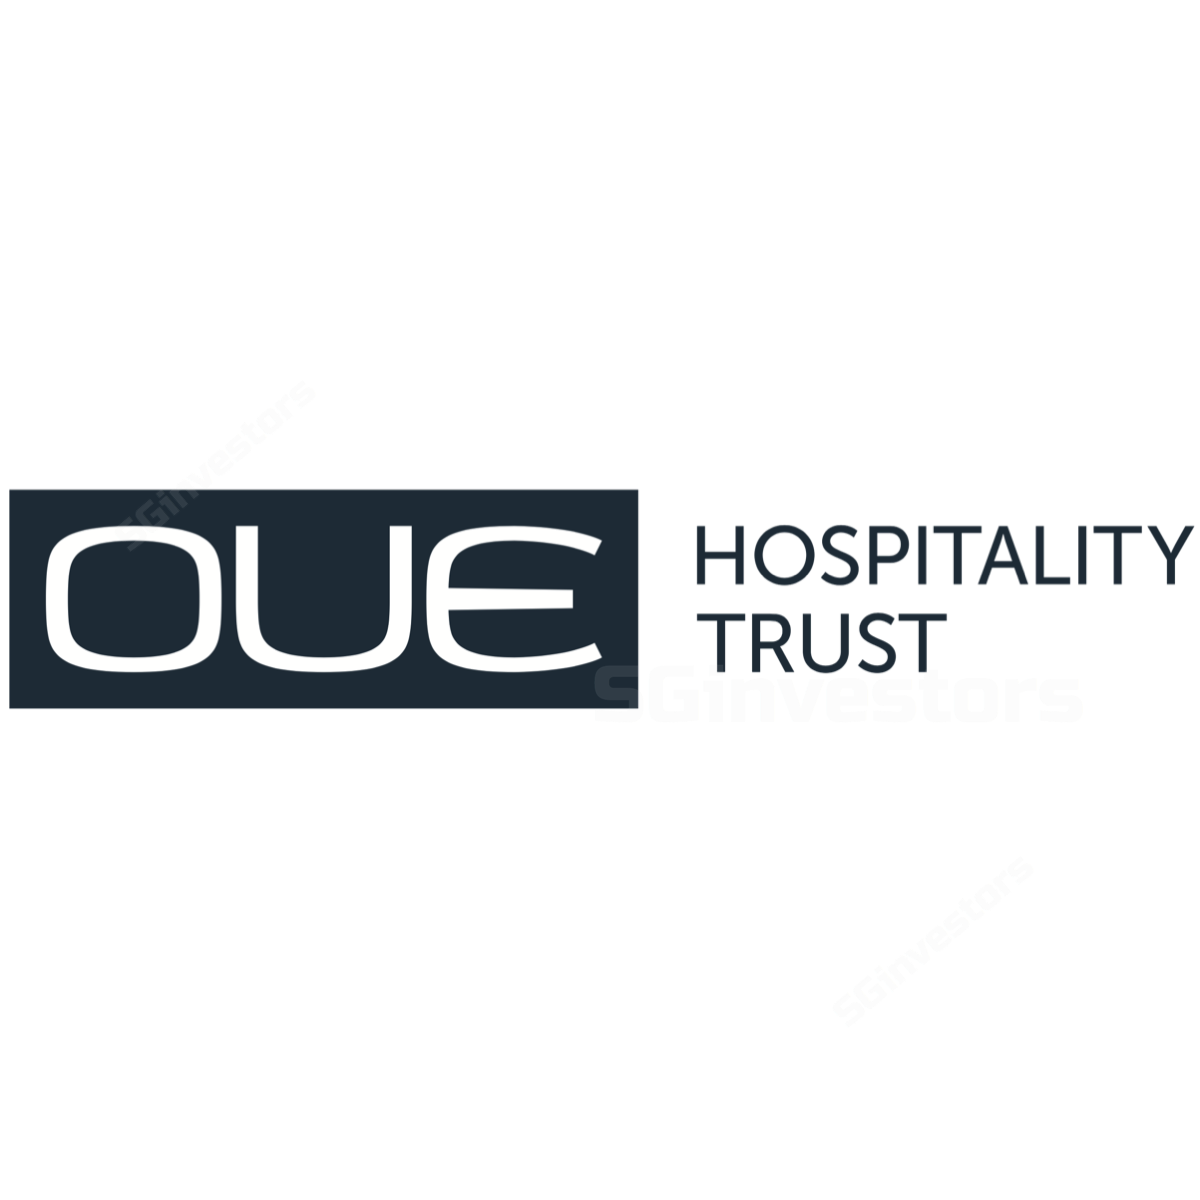 OUE Hospitality Trust - CGS-CIMB Research 2018-07-27: A Near-term Hiccup In Revpar